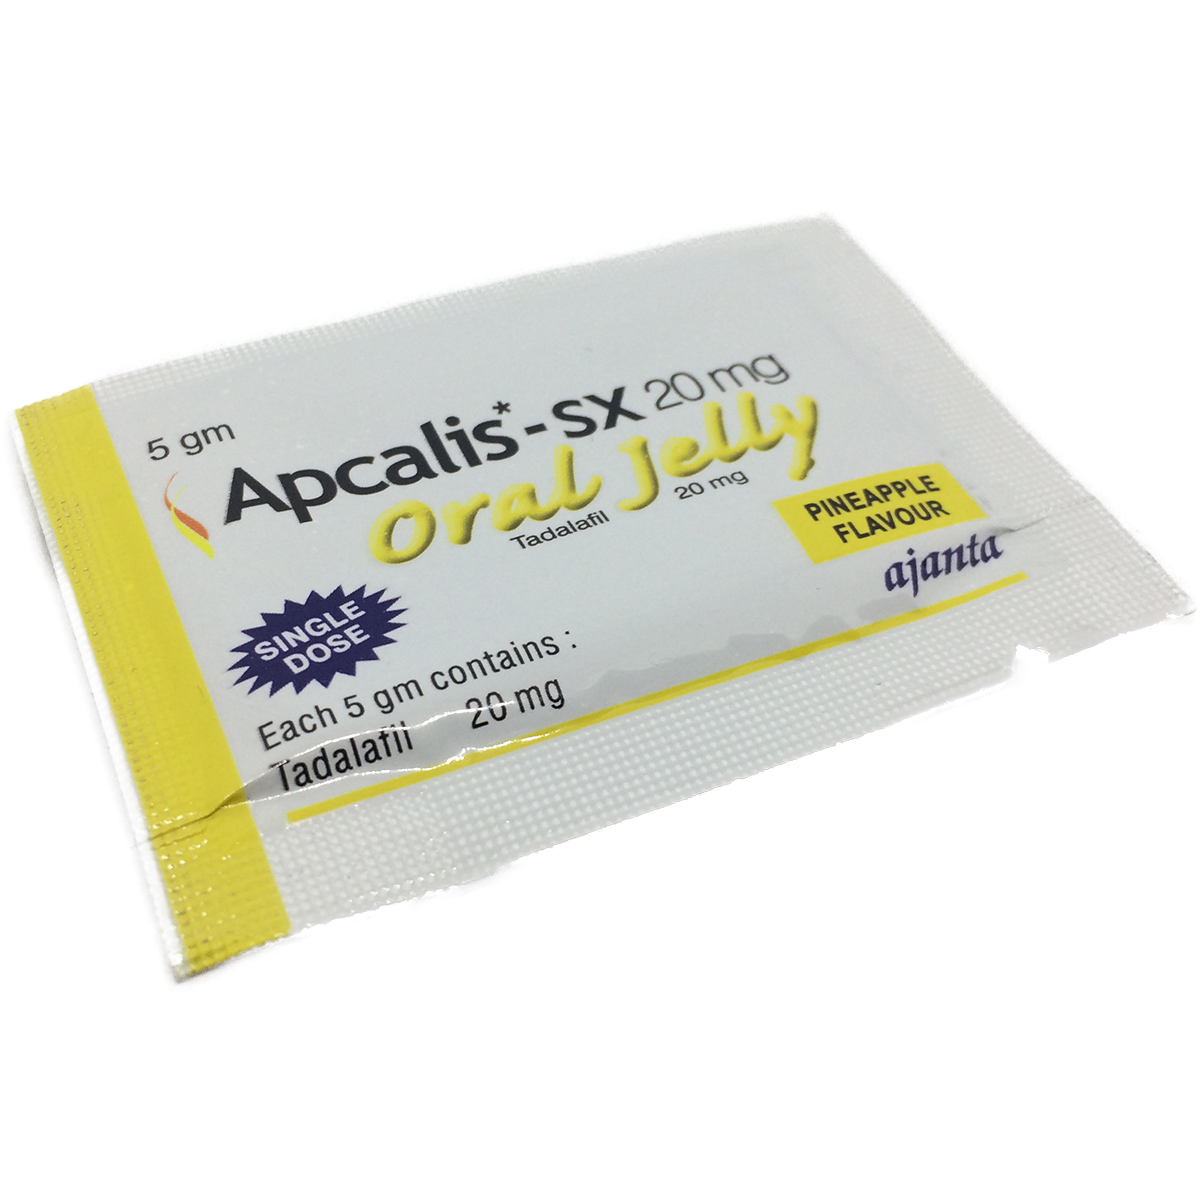 Купить Apcalis-sx Oral Jelly x 7 шт